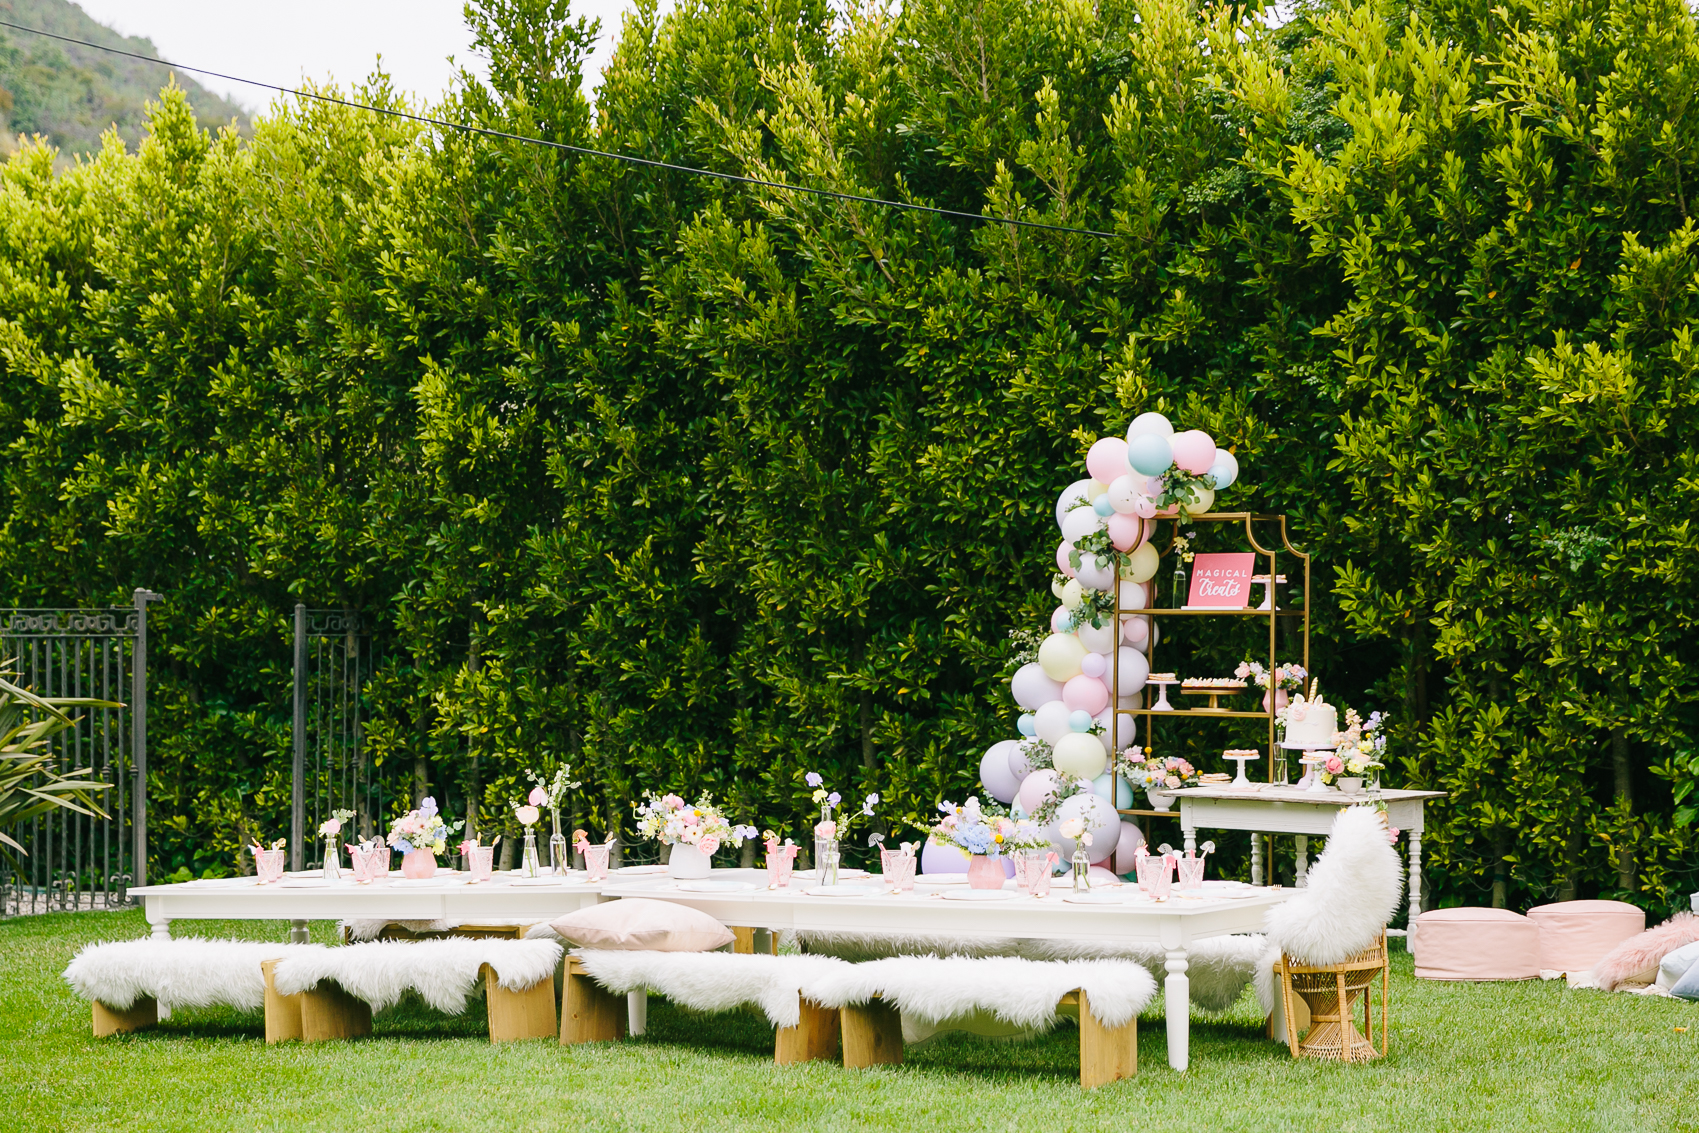 Los_Angeles_Family_Photographer_Luxury_Childrens_Party_Beverly_Hills_Unicorn_Birthday_Party-0132.jpg